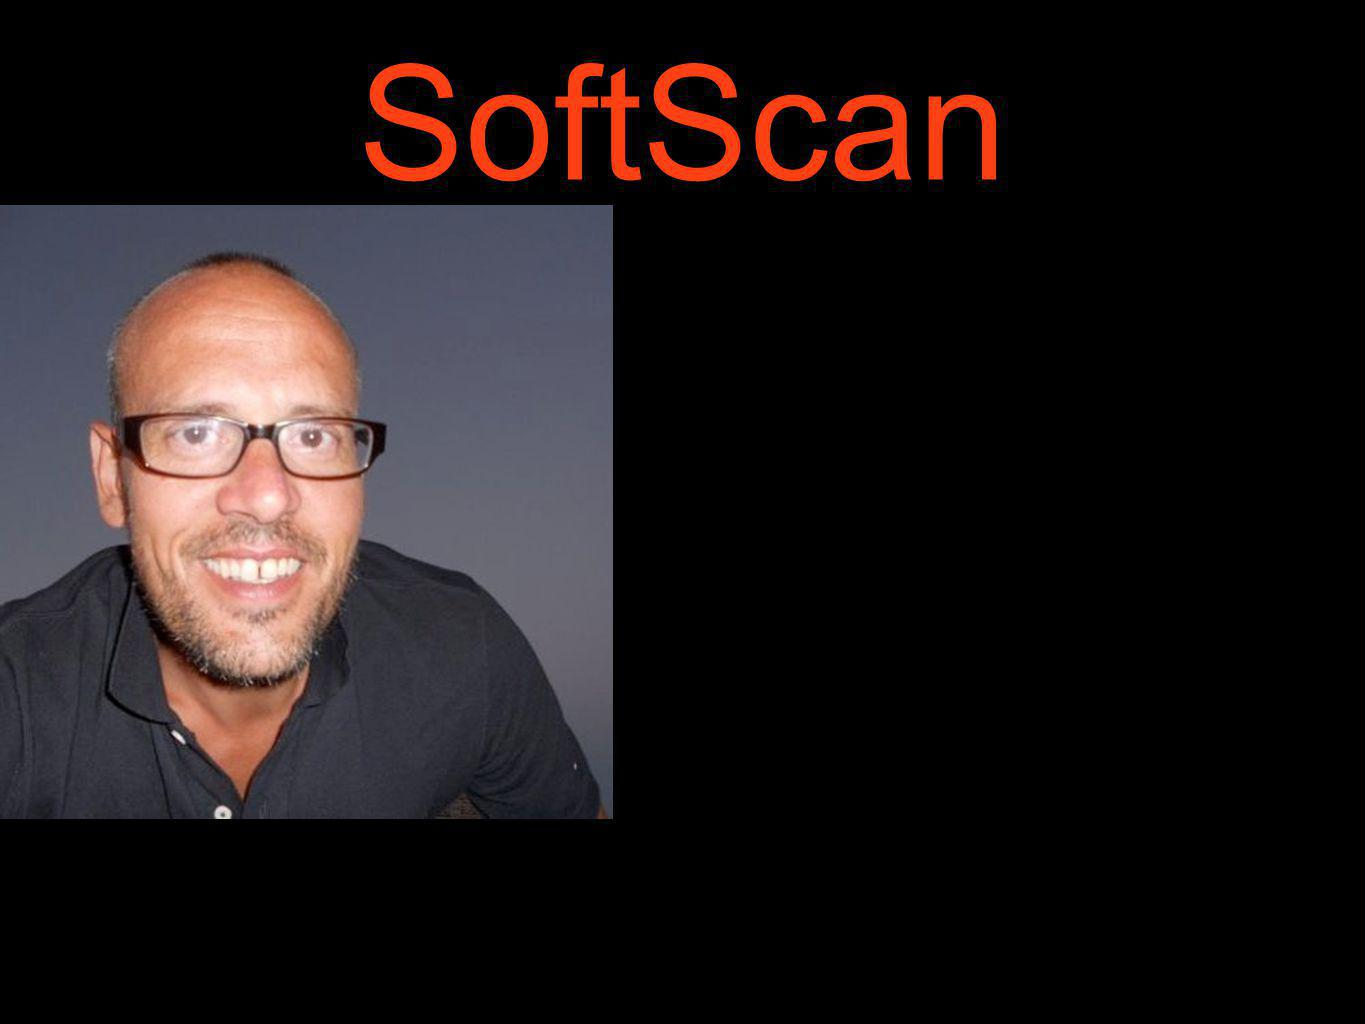 SoftScan